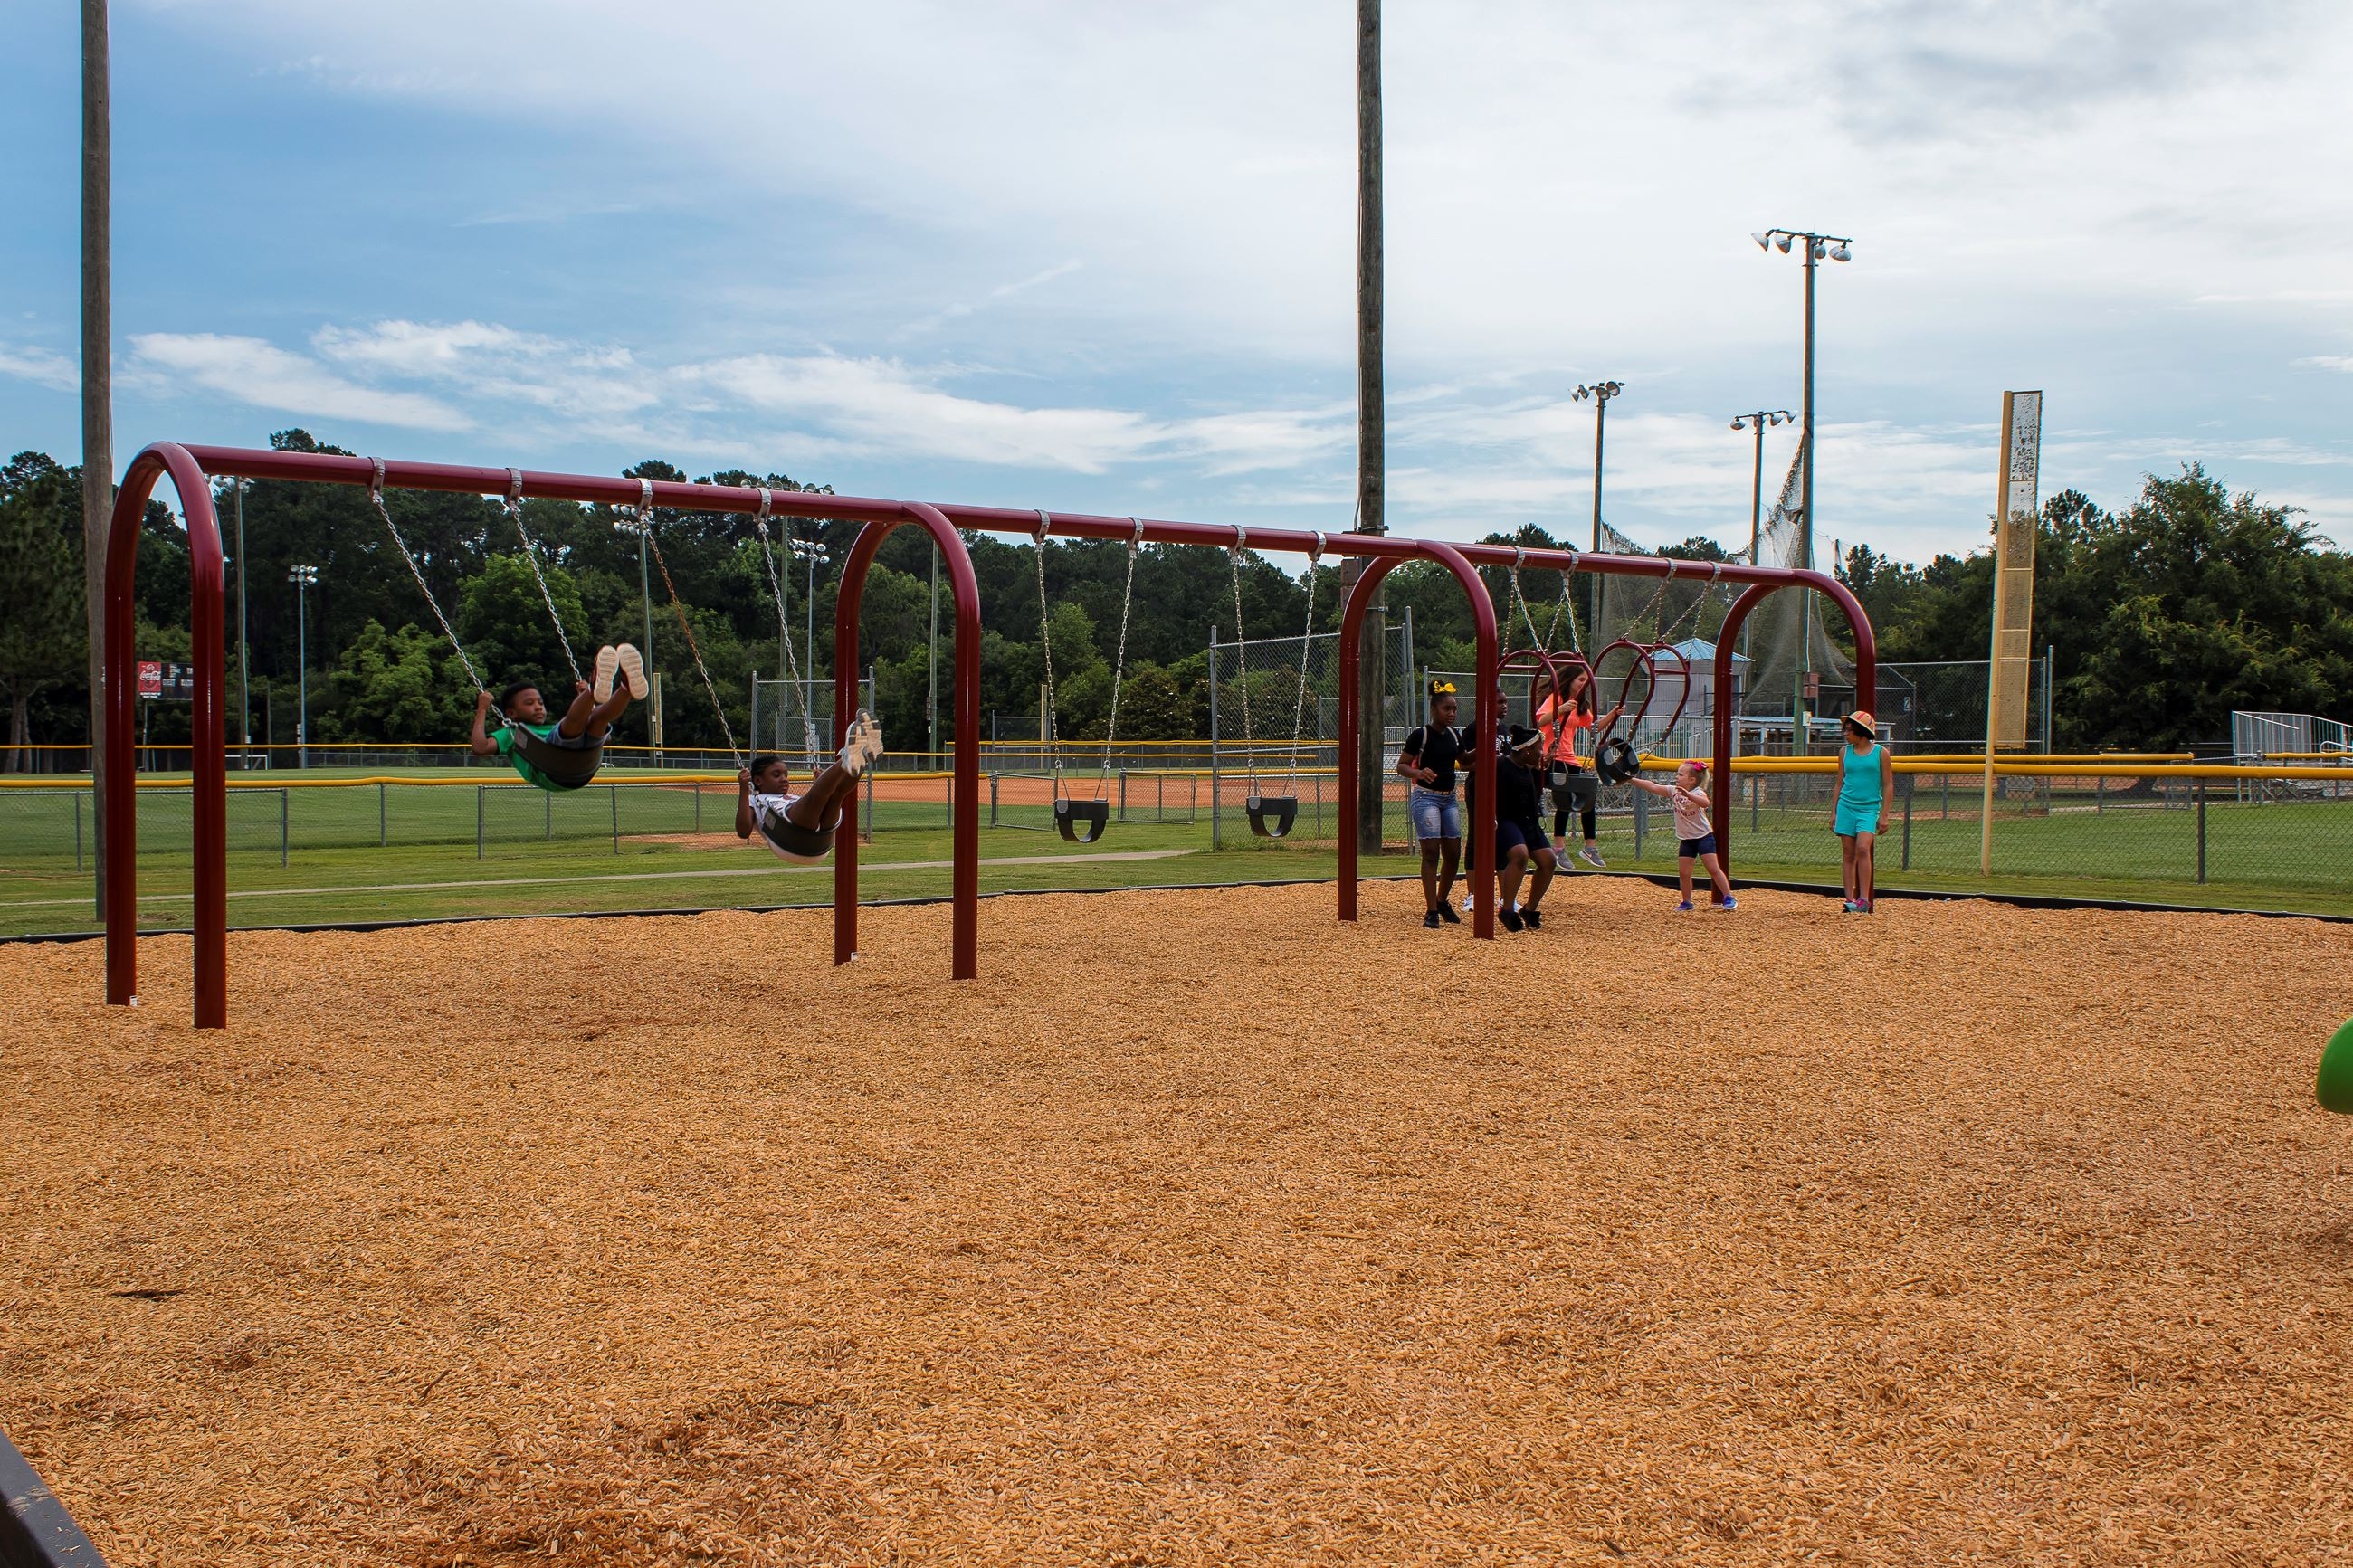 An image of a large swing set with children swinging.